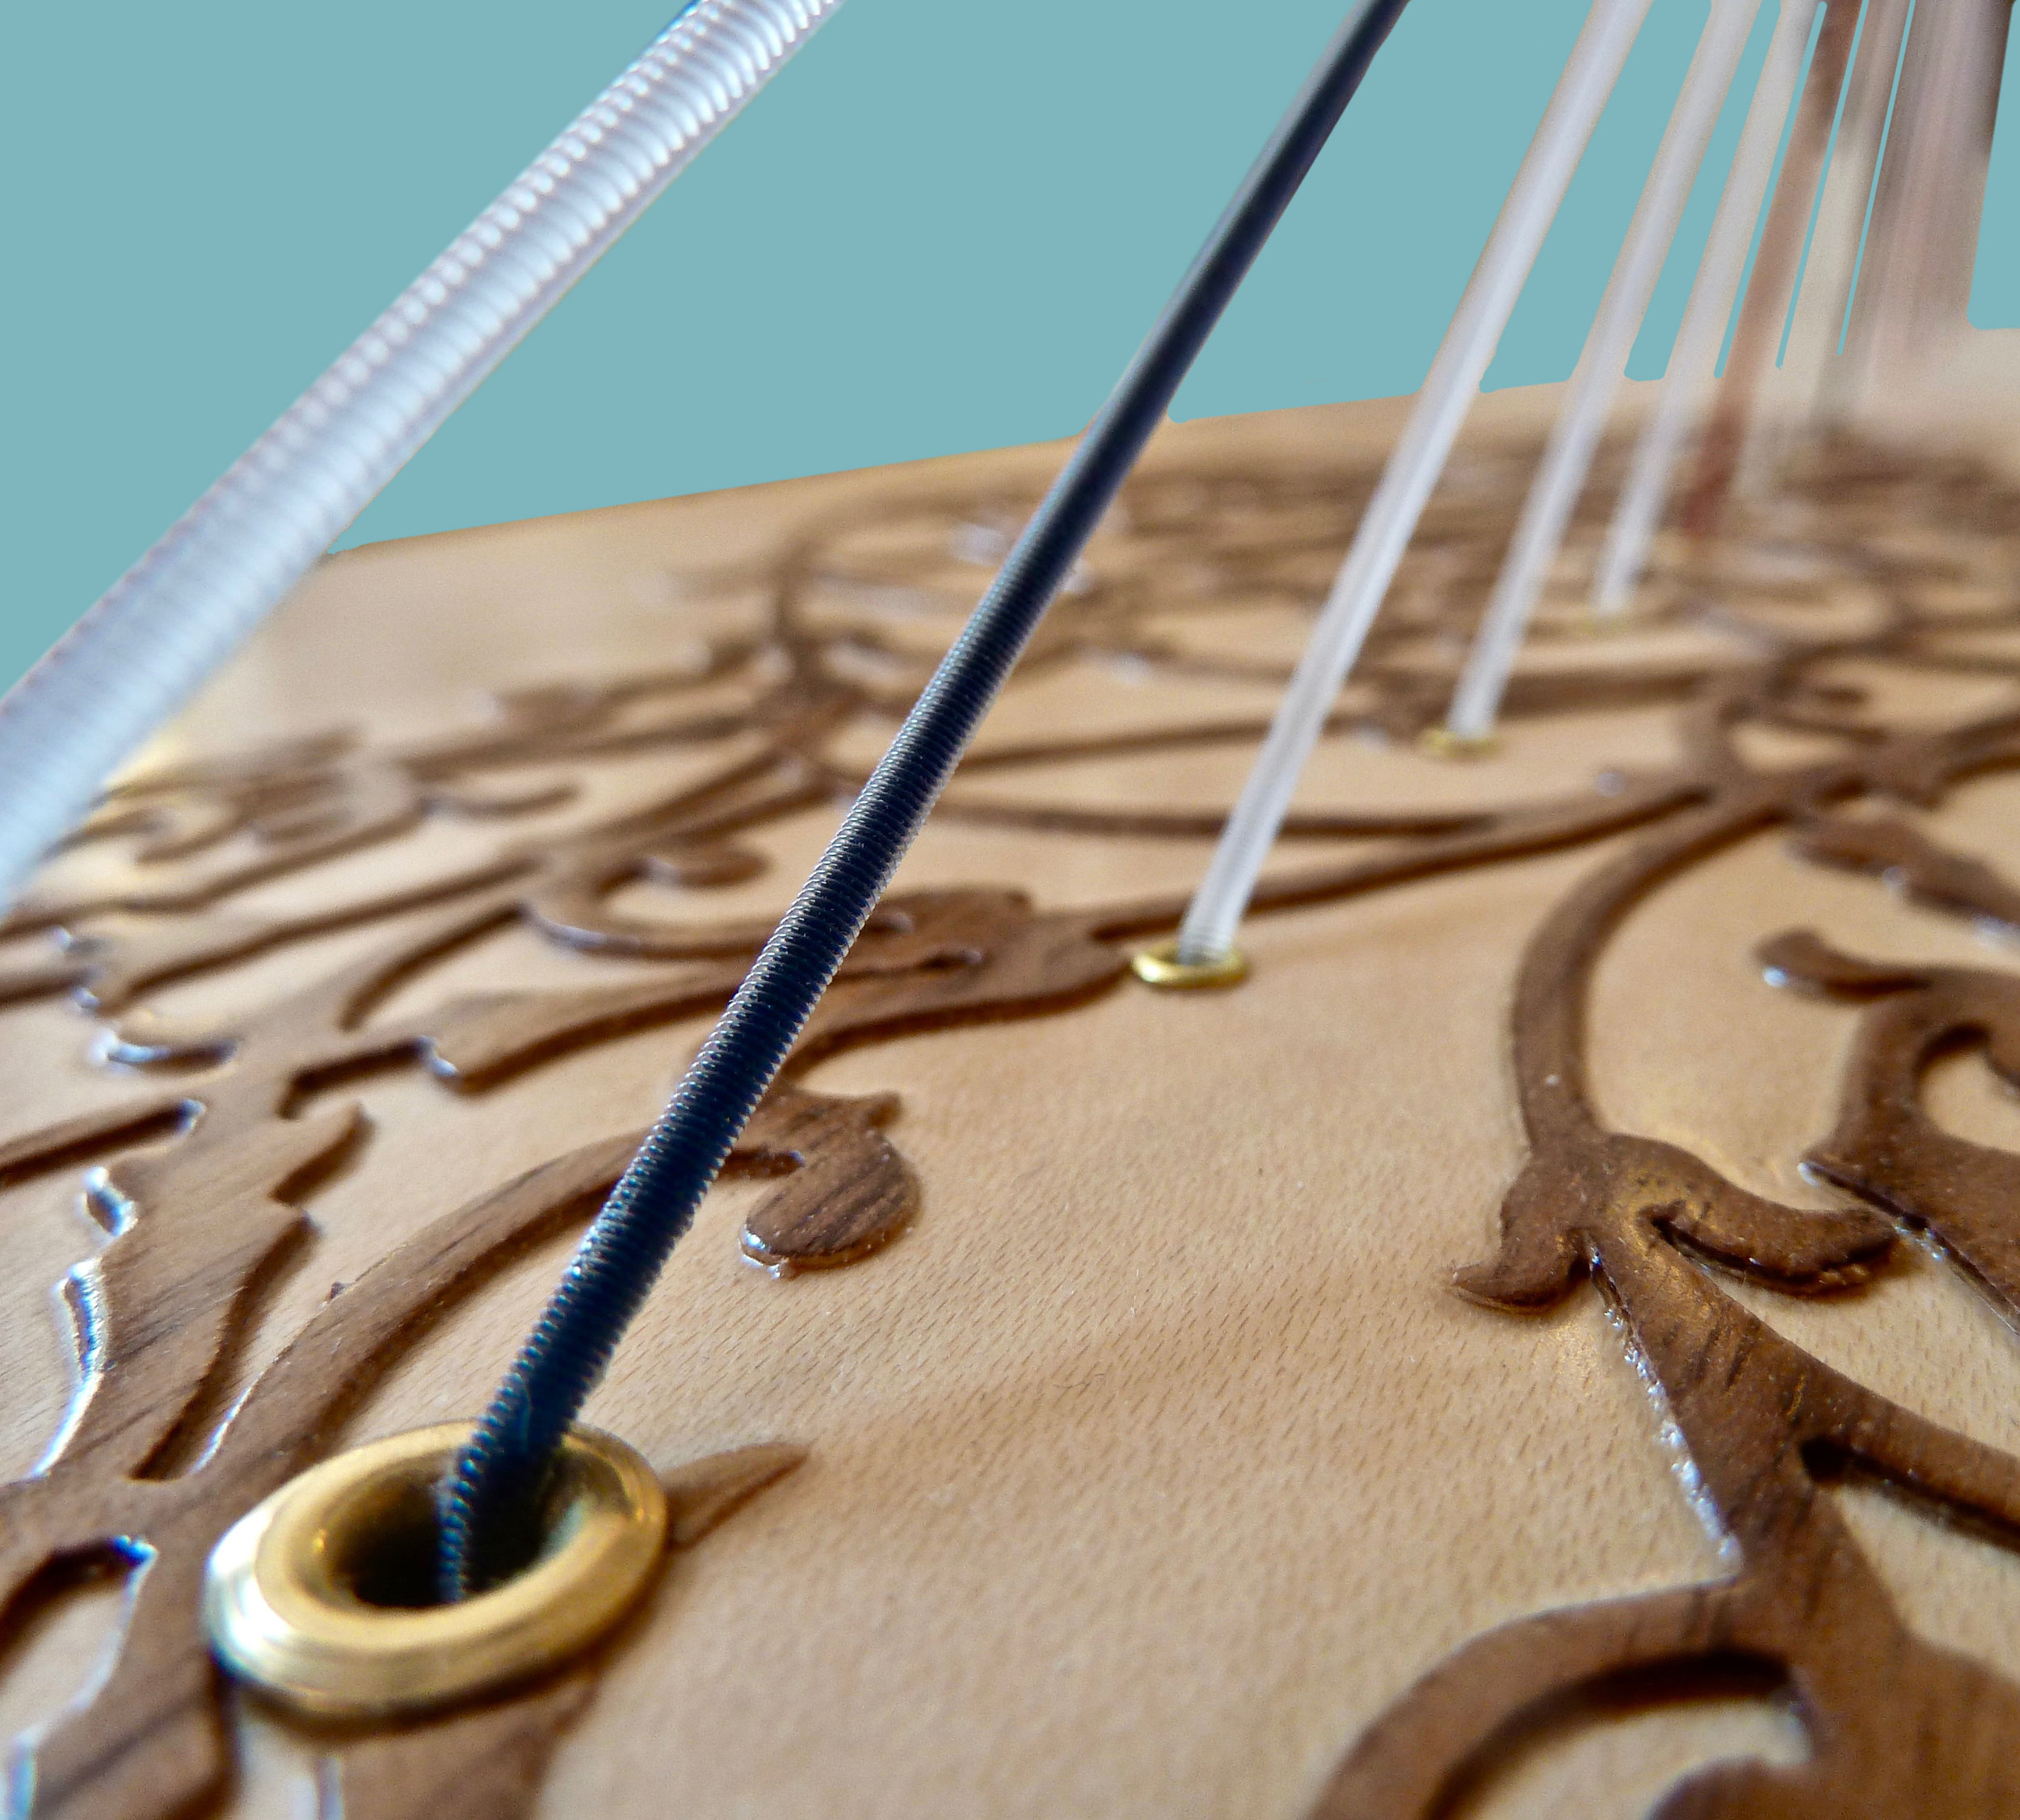 """On lever harps the bass strings exert enough force on the soundboard that it actually """"bellys-up"""" a bit. This is true even in a low tension harp like the Rees Mariposa shown above."""